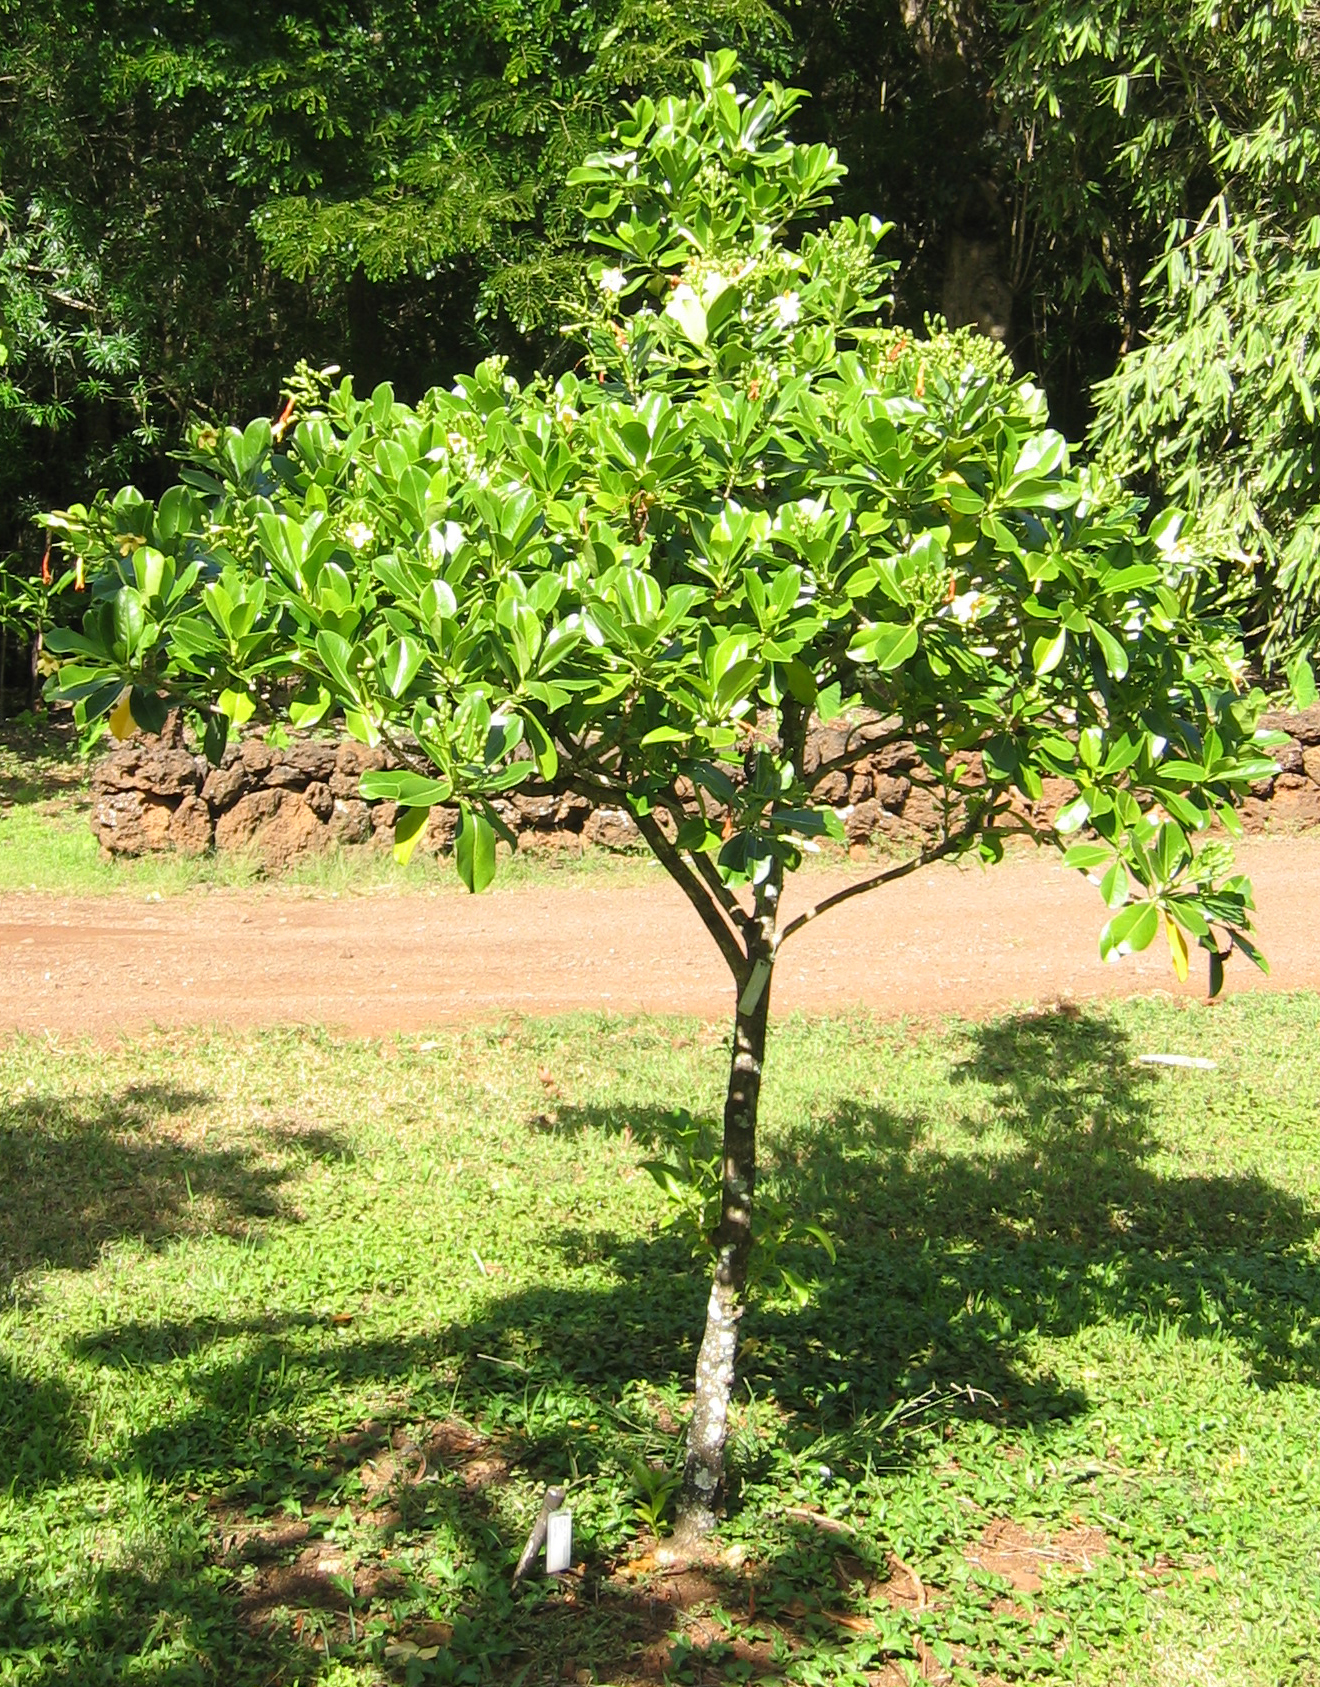 Fagraea berteroana   - Habit, young tree